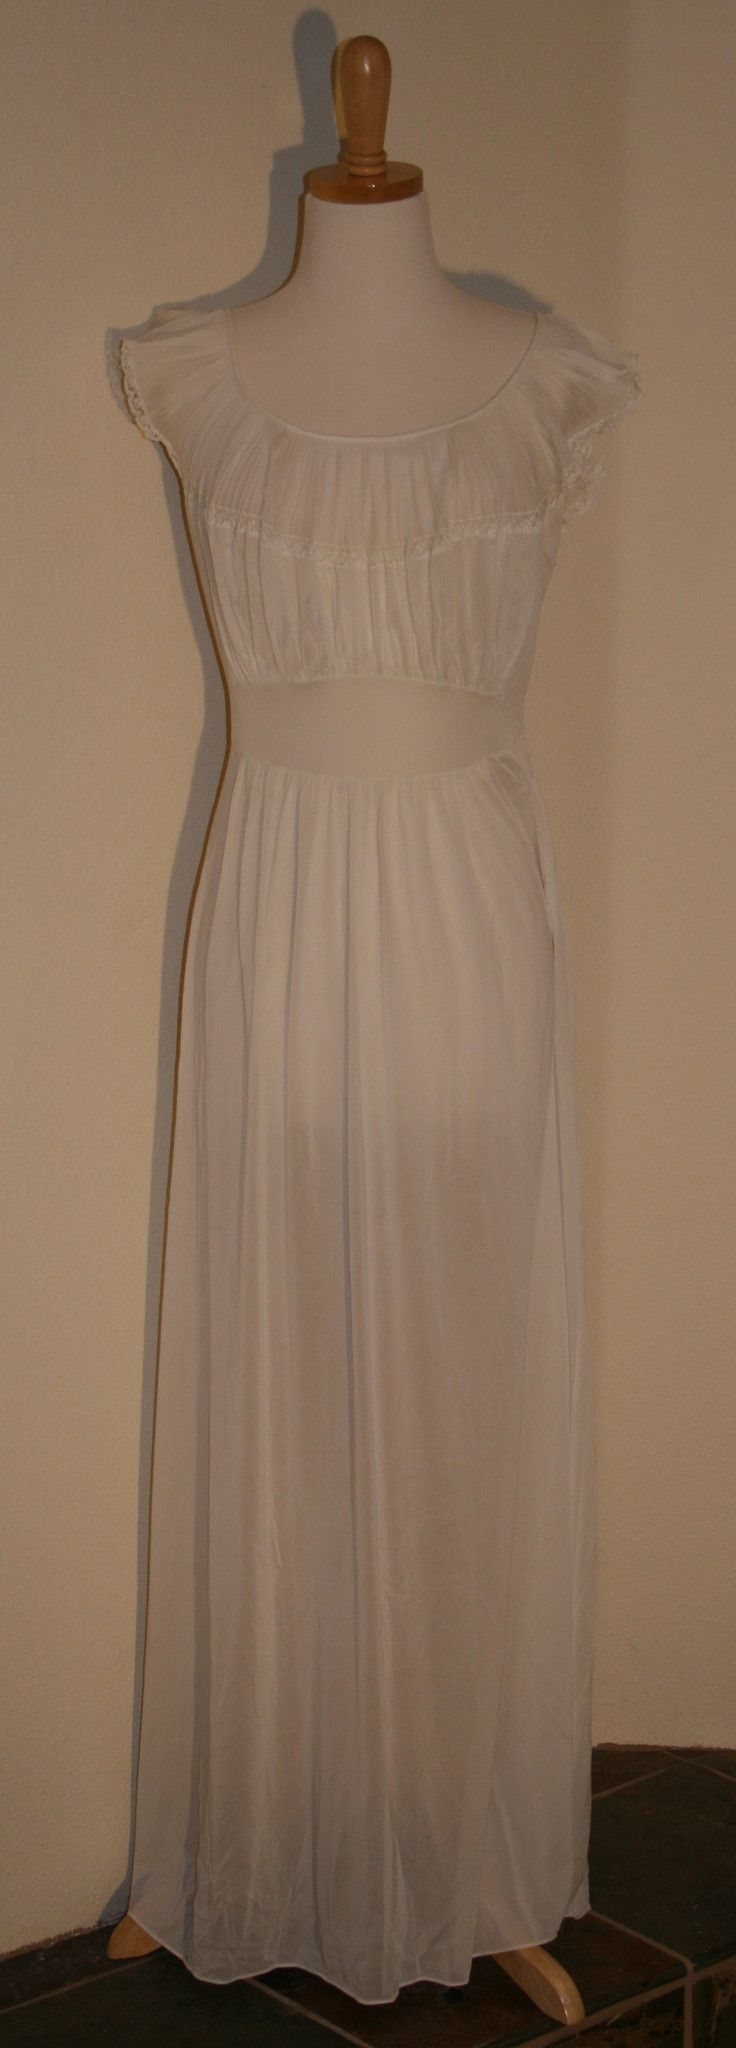 Slinky, sweet, classic design with tiny pleating across the decolletage…